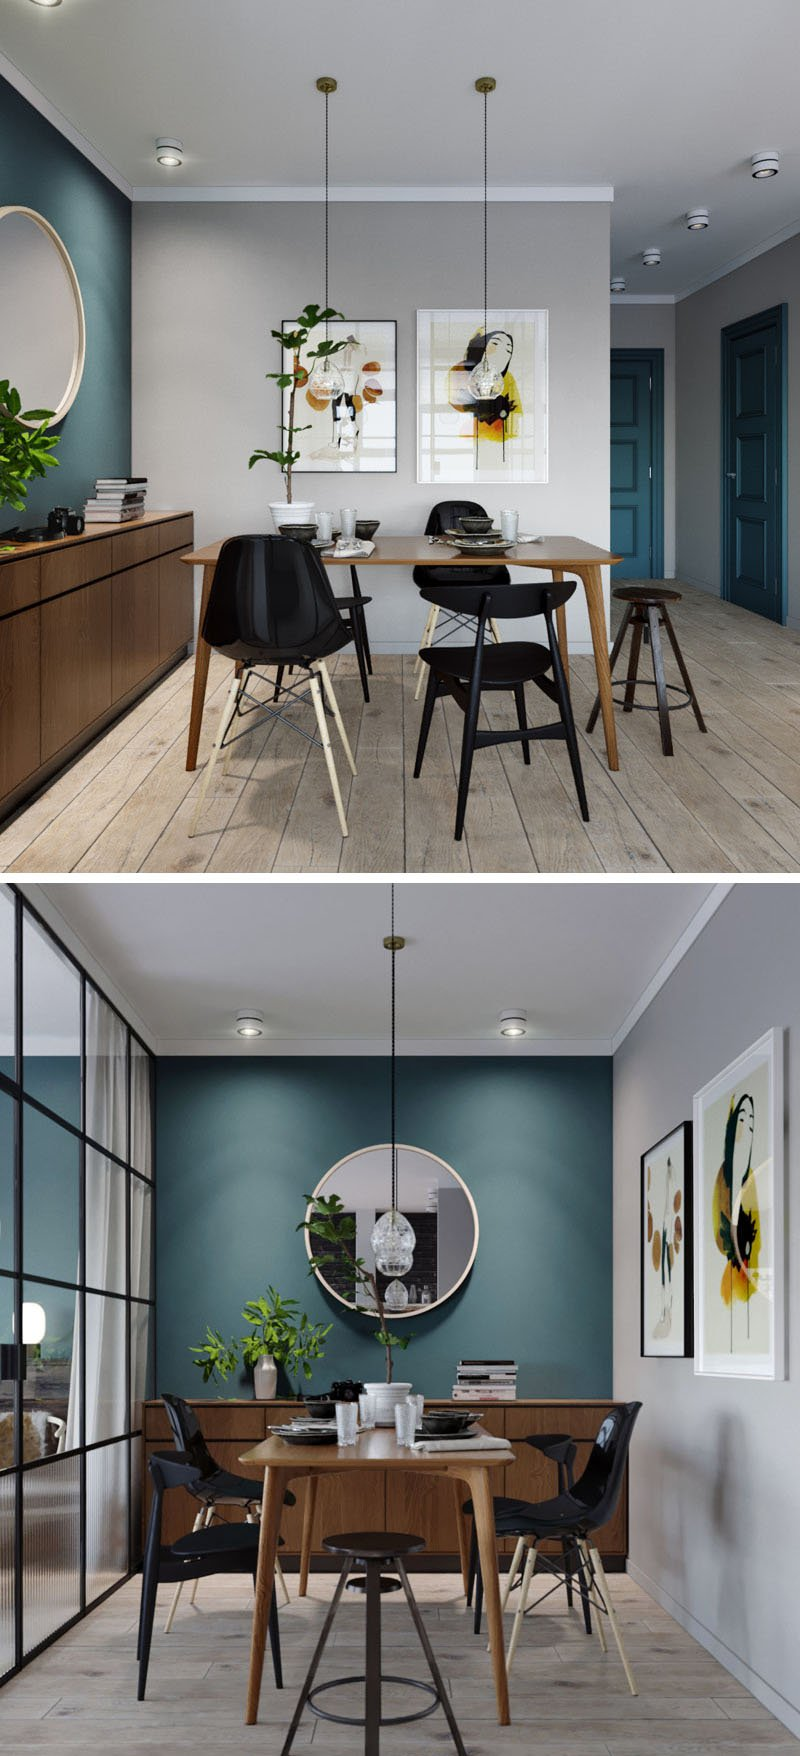 Mur bleu canard et style loft blog d co clem around for Salle a manger bleu canard